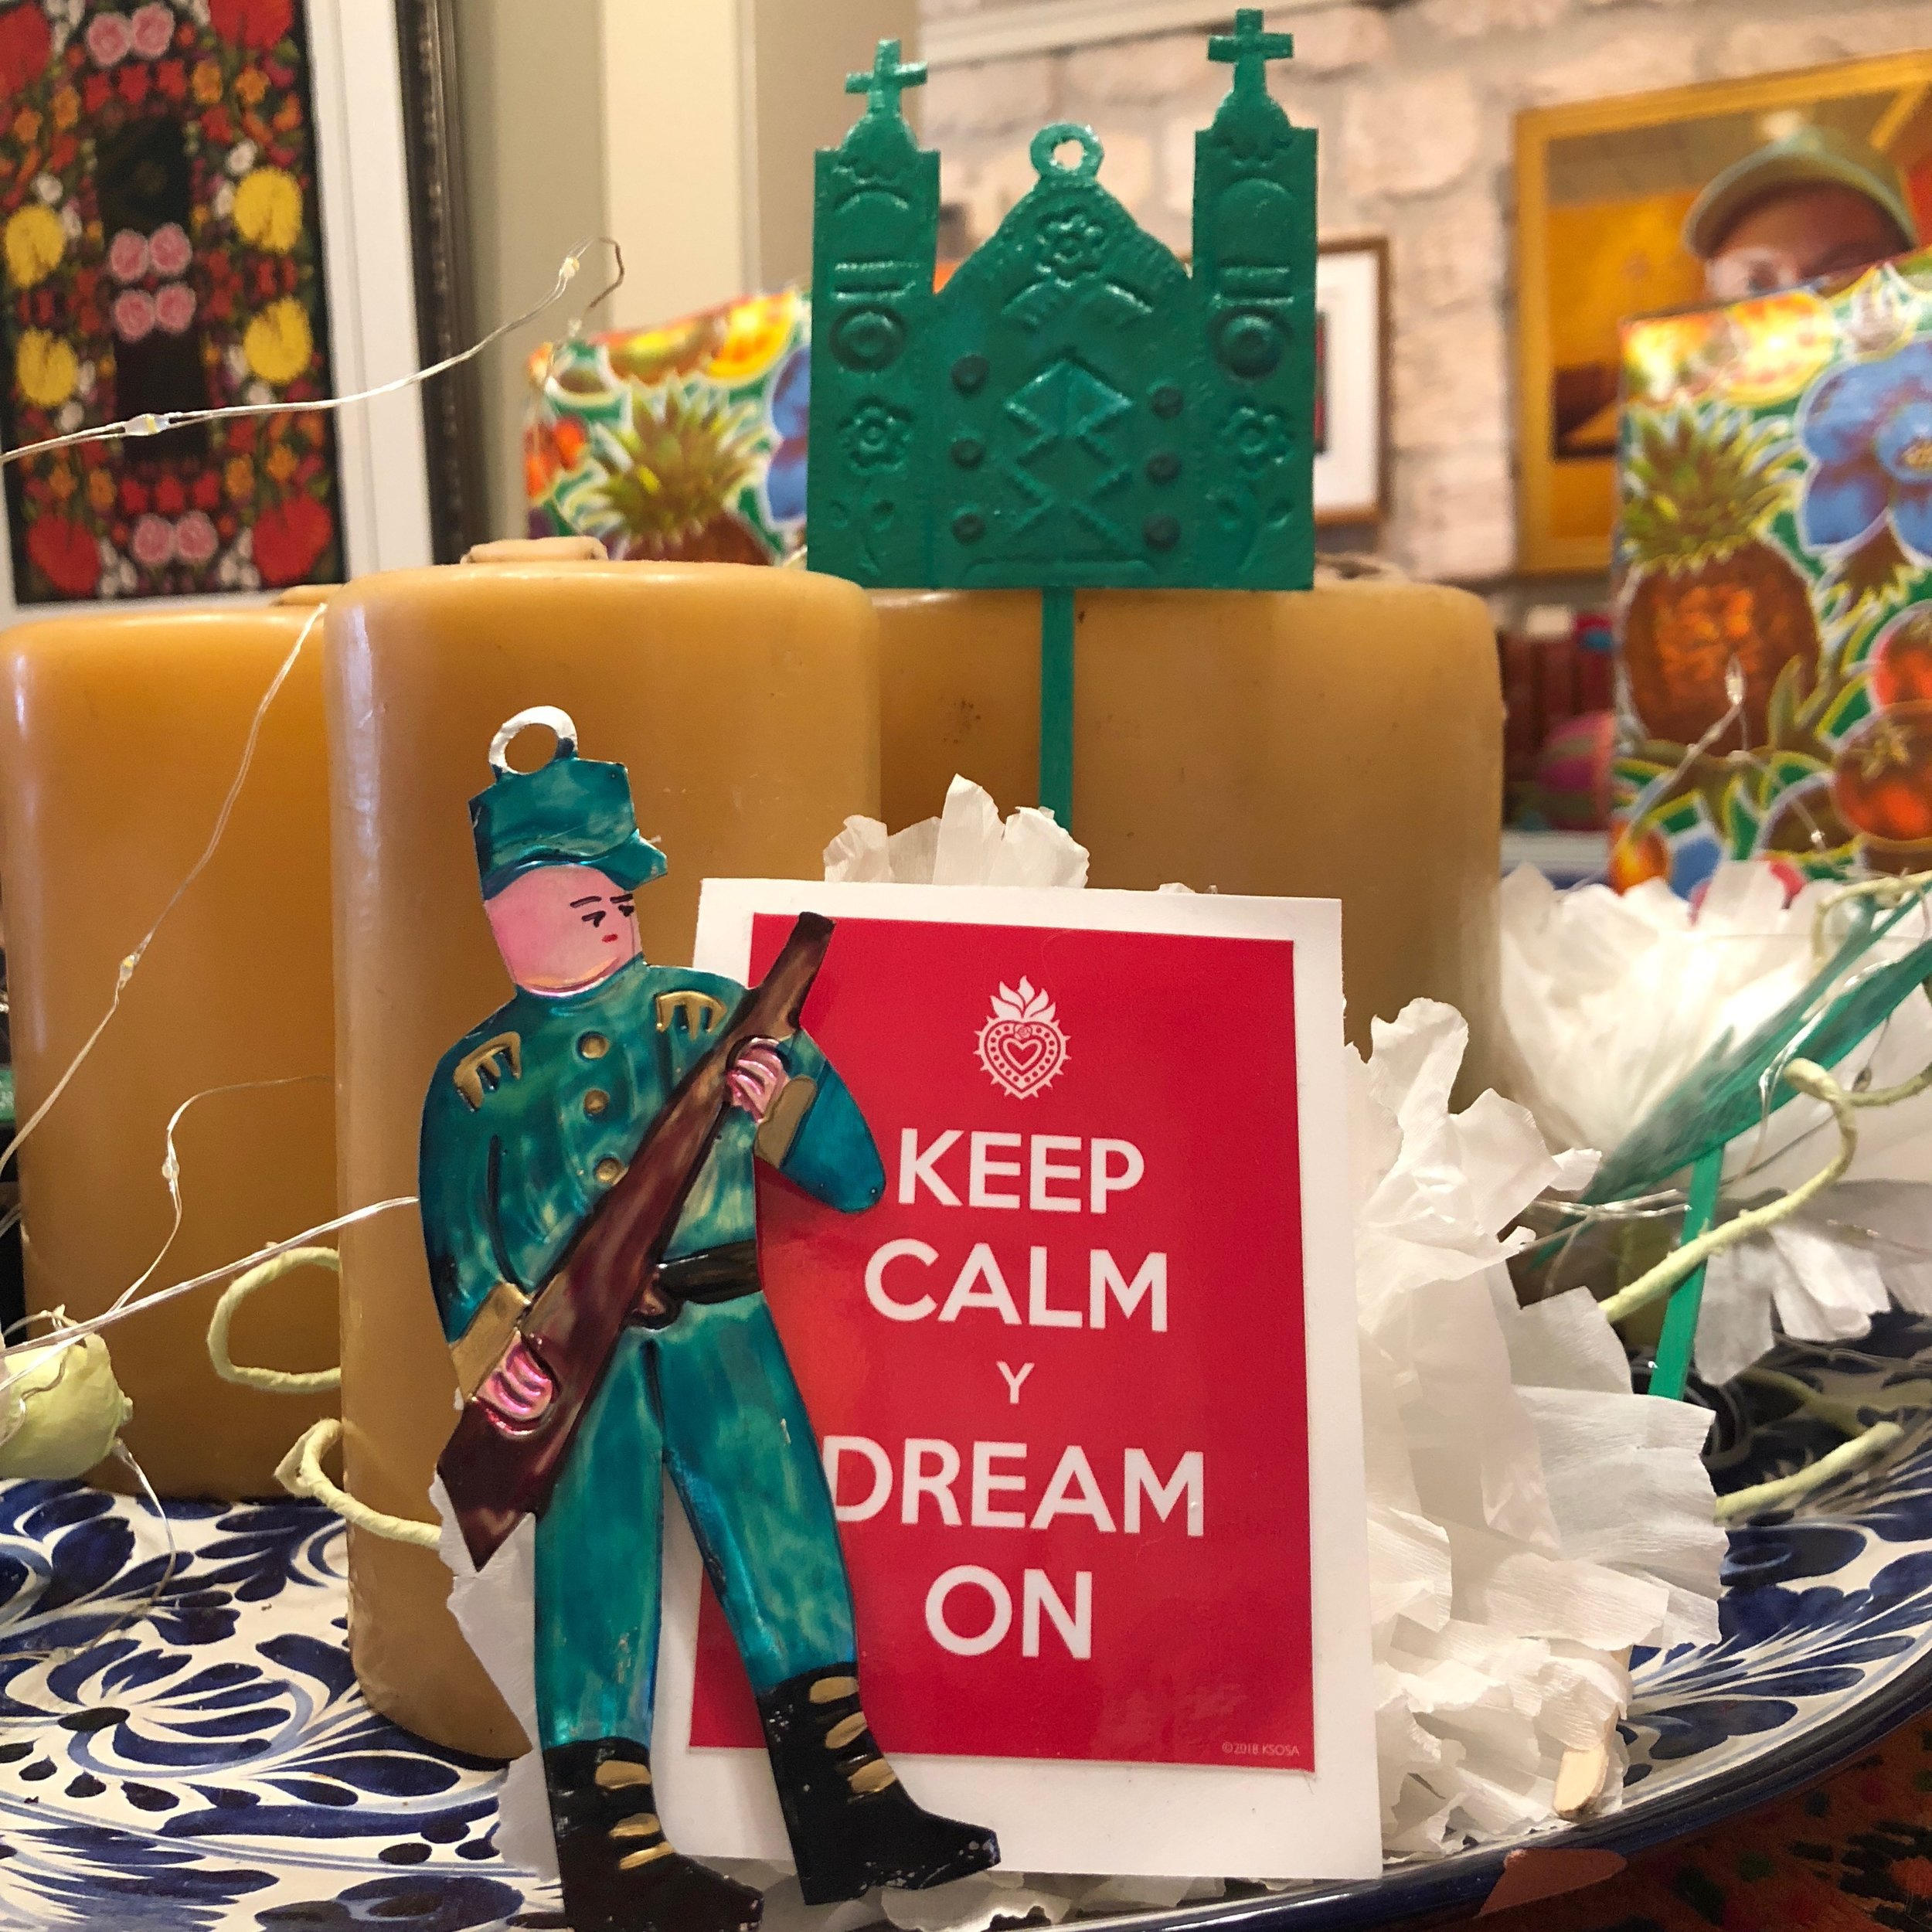 "SosaGalleries SouthTown San Antonio, Texas March 7, 2018 Photo by KSosa  ""I took this photo in our art gallery which is full of Mexican inspired art and objects. I used the Mexican tin ornaments of the Cathedral to symbolize sanctuary and the little man with the gun is probably a 'federale' but he is doing double duty here as a border patrol agent."" - Kathy Sosa"